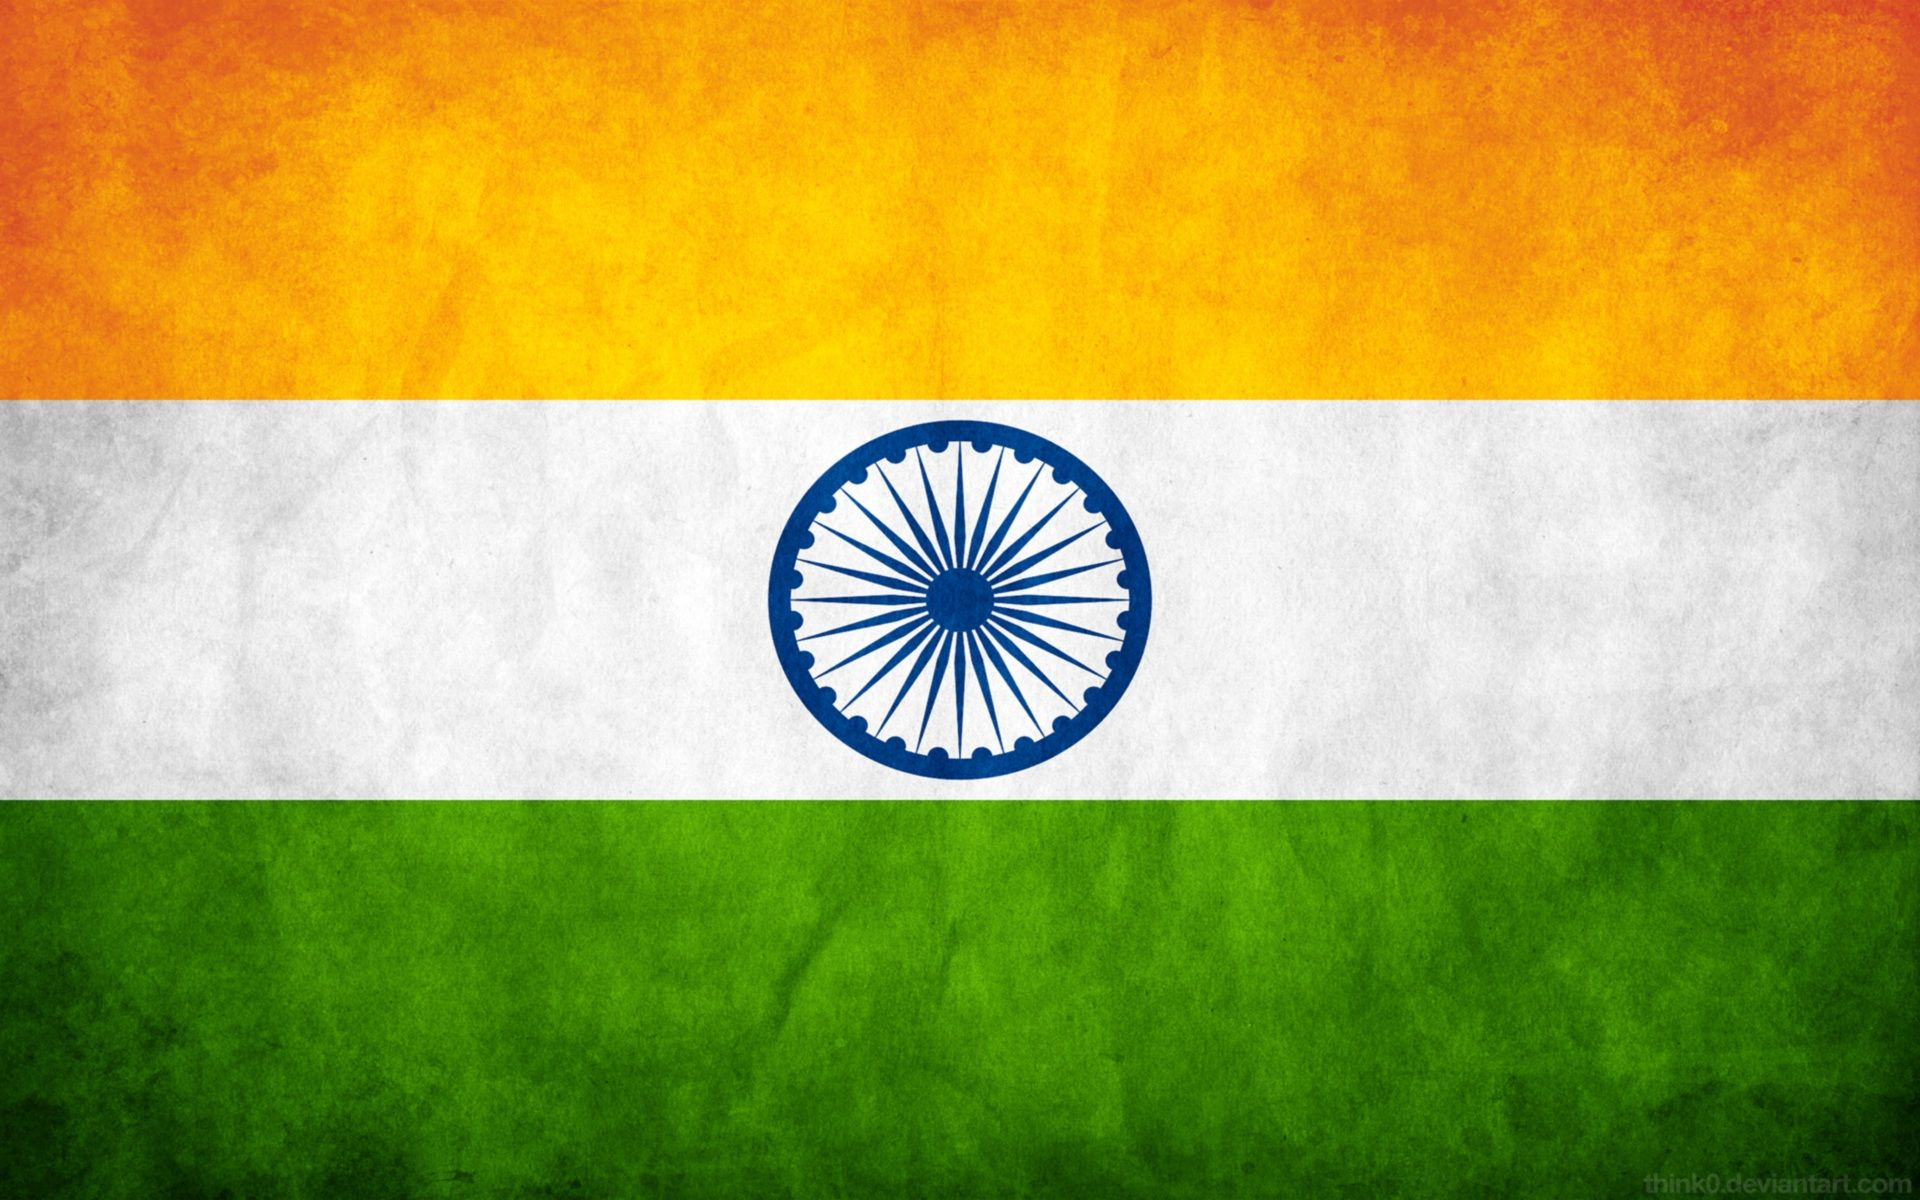 Indian Flag Images Hd720p: Indian-flag-HD-wallpapers-Pictures